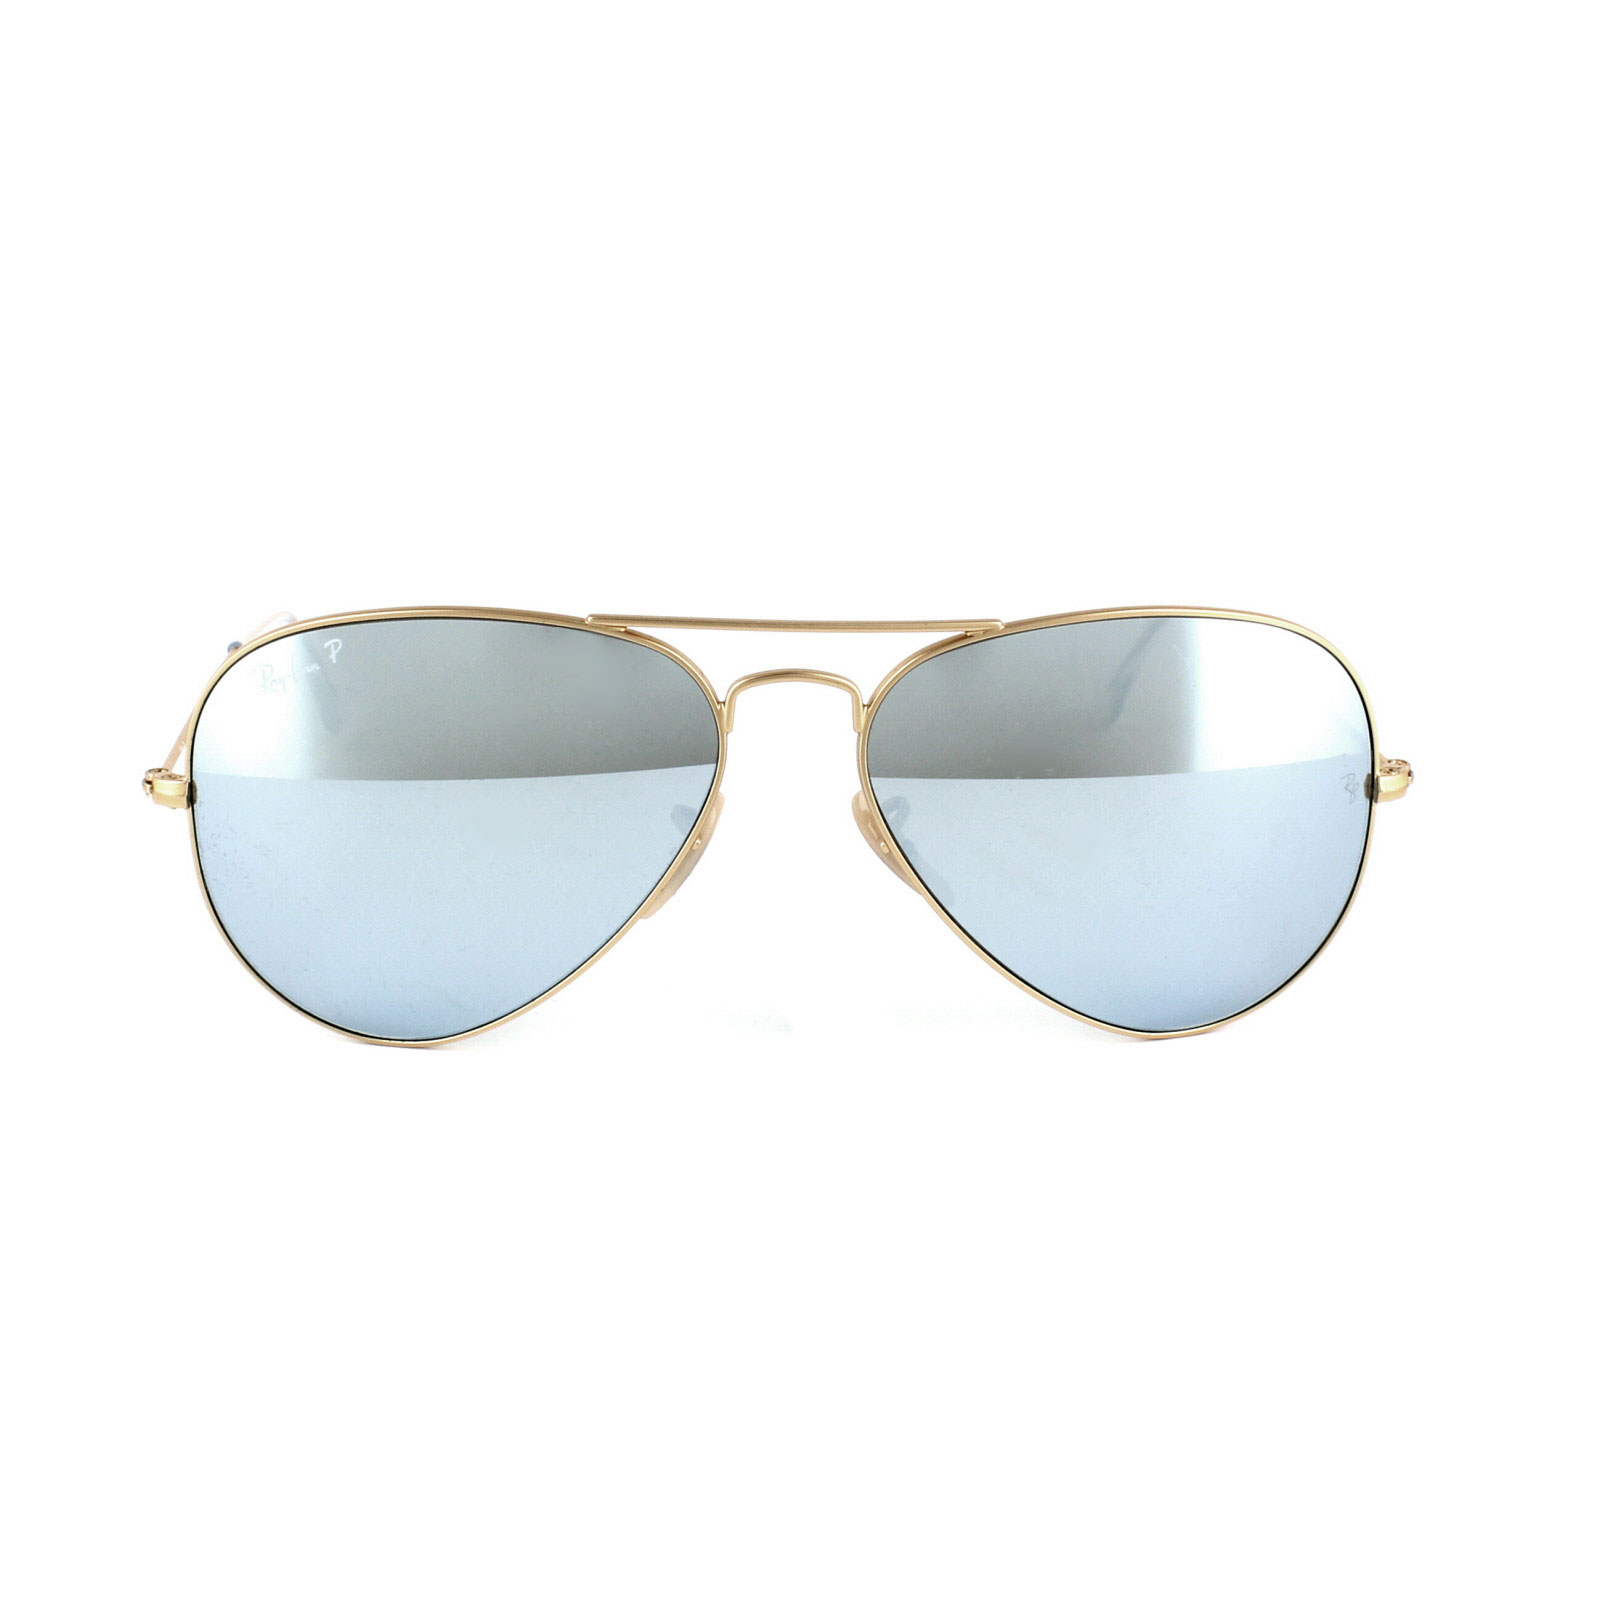 Ray-Ban Aviator Large Metal RB 3025 112/W3-medium eubPW22y